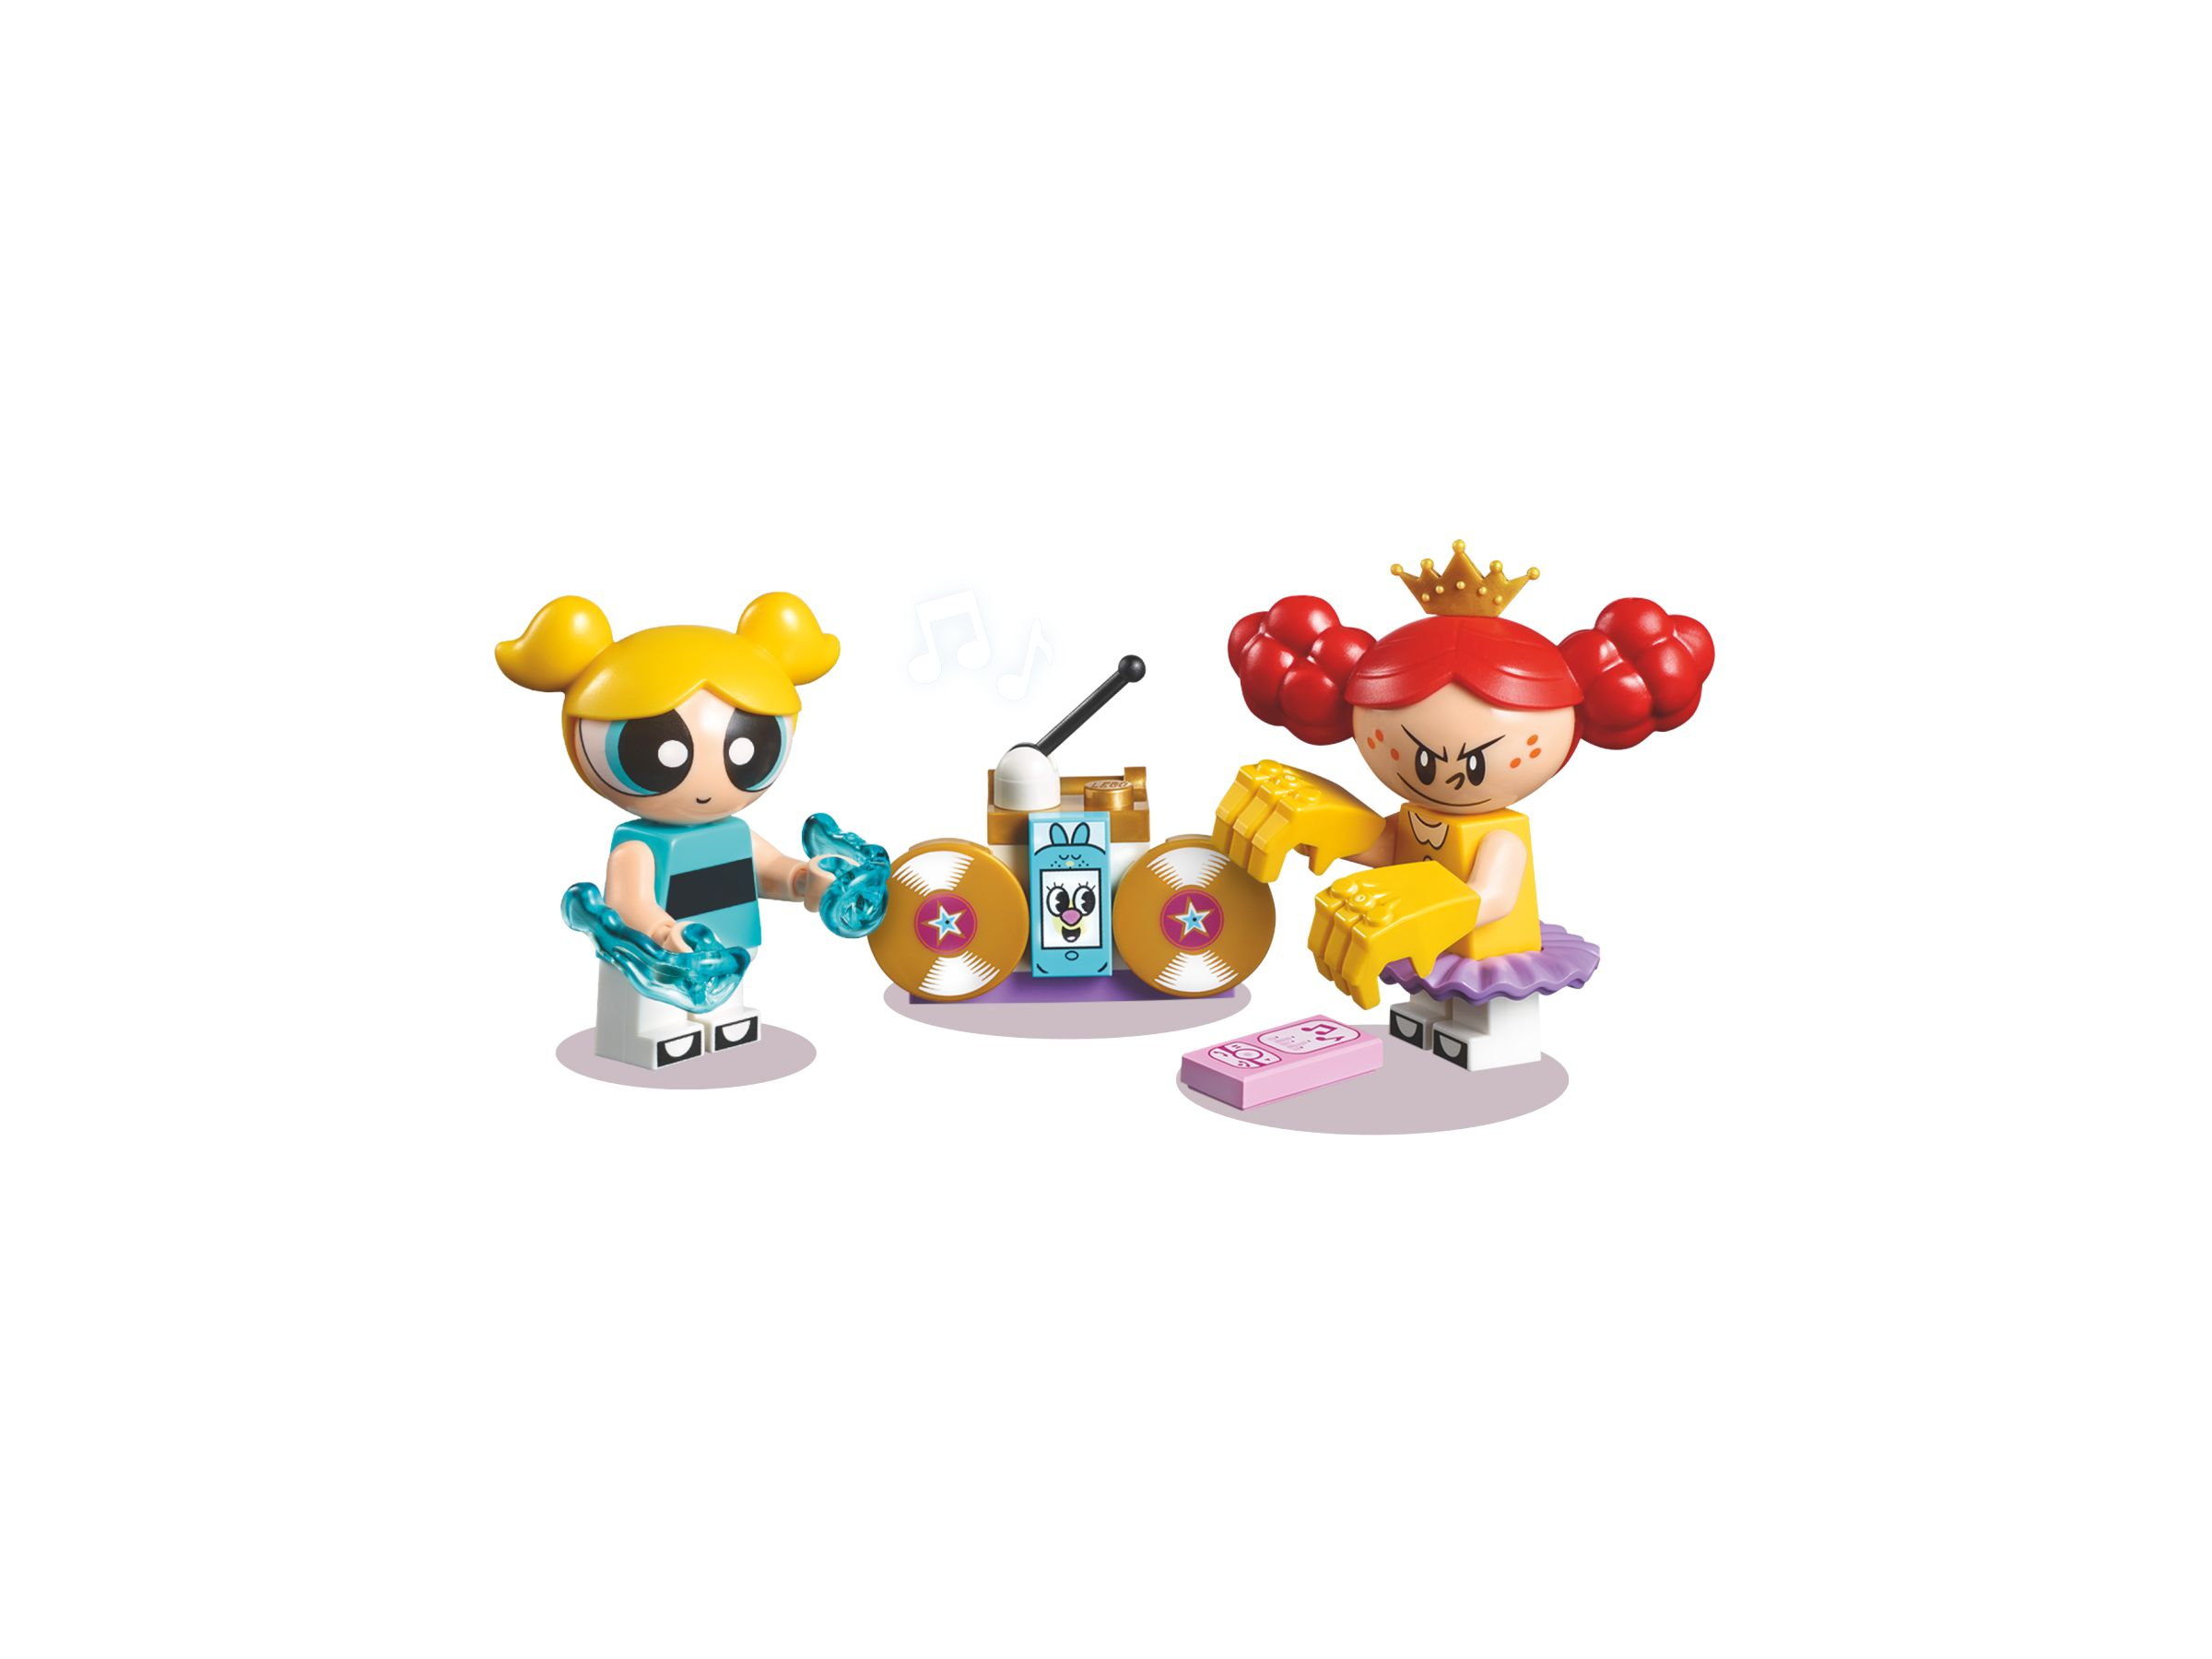 LEGO The Powerpuff Girls 41287 Bubbles' Spielplatzabenteuer LEGO_41287_alt5.jpg